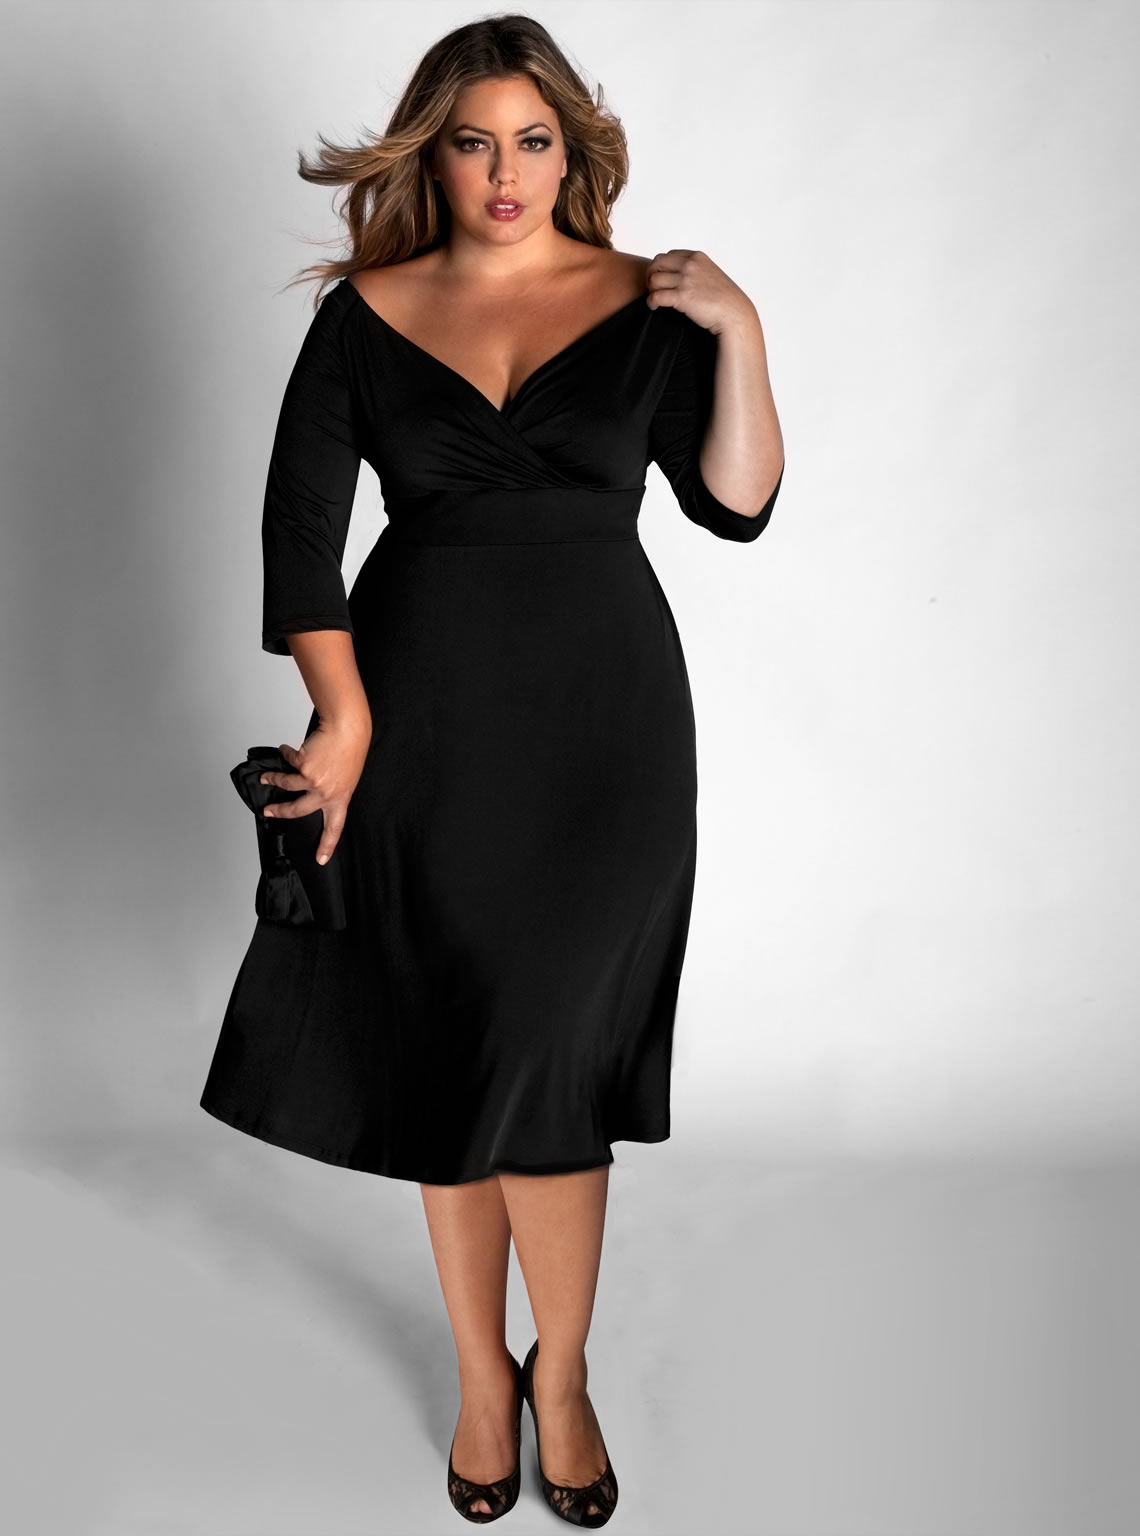 Whether you're headed to a ladies' brunch or night on the town, our size 14 dresses collection is flawless. From classic wrap dresses in sultry satin to effortless maxi dresses adorned in florals, find your favourite in our women's size 14 dresses and create an elegant silhouette.